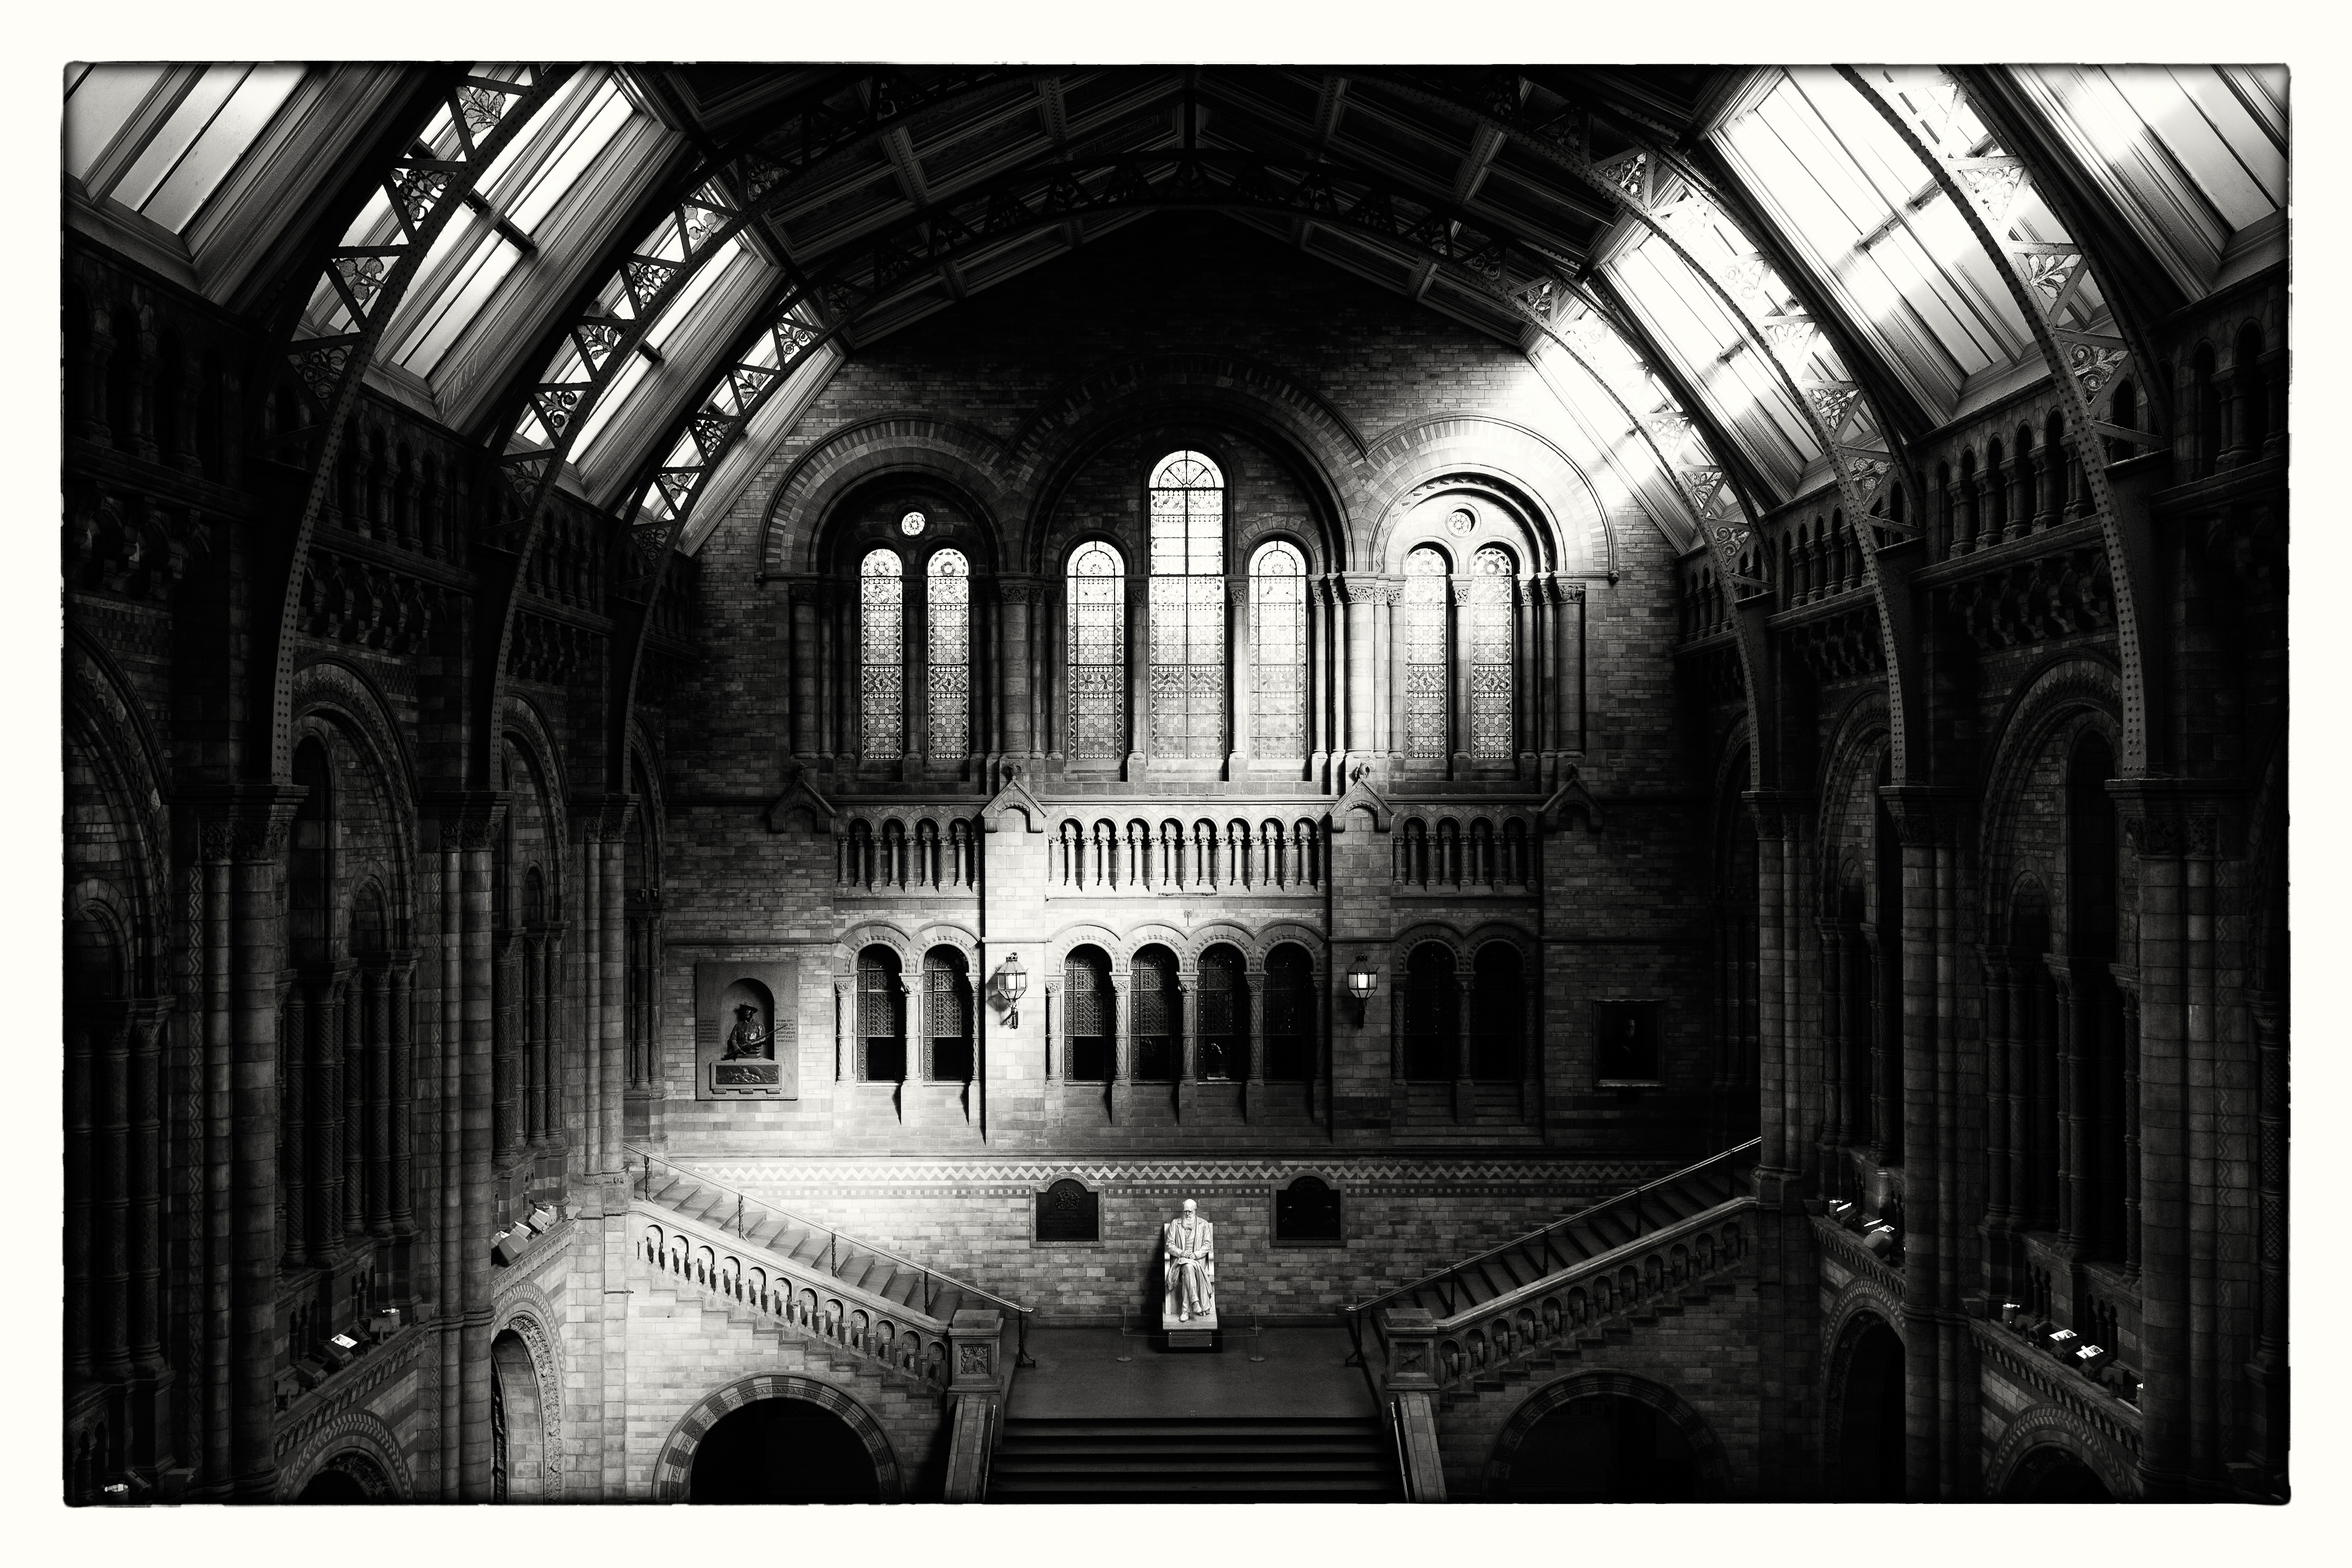 Sepia tone was used to warm up this architectural shot